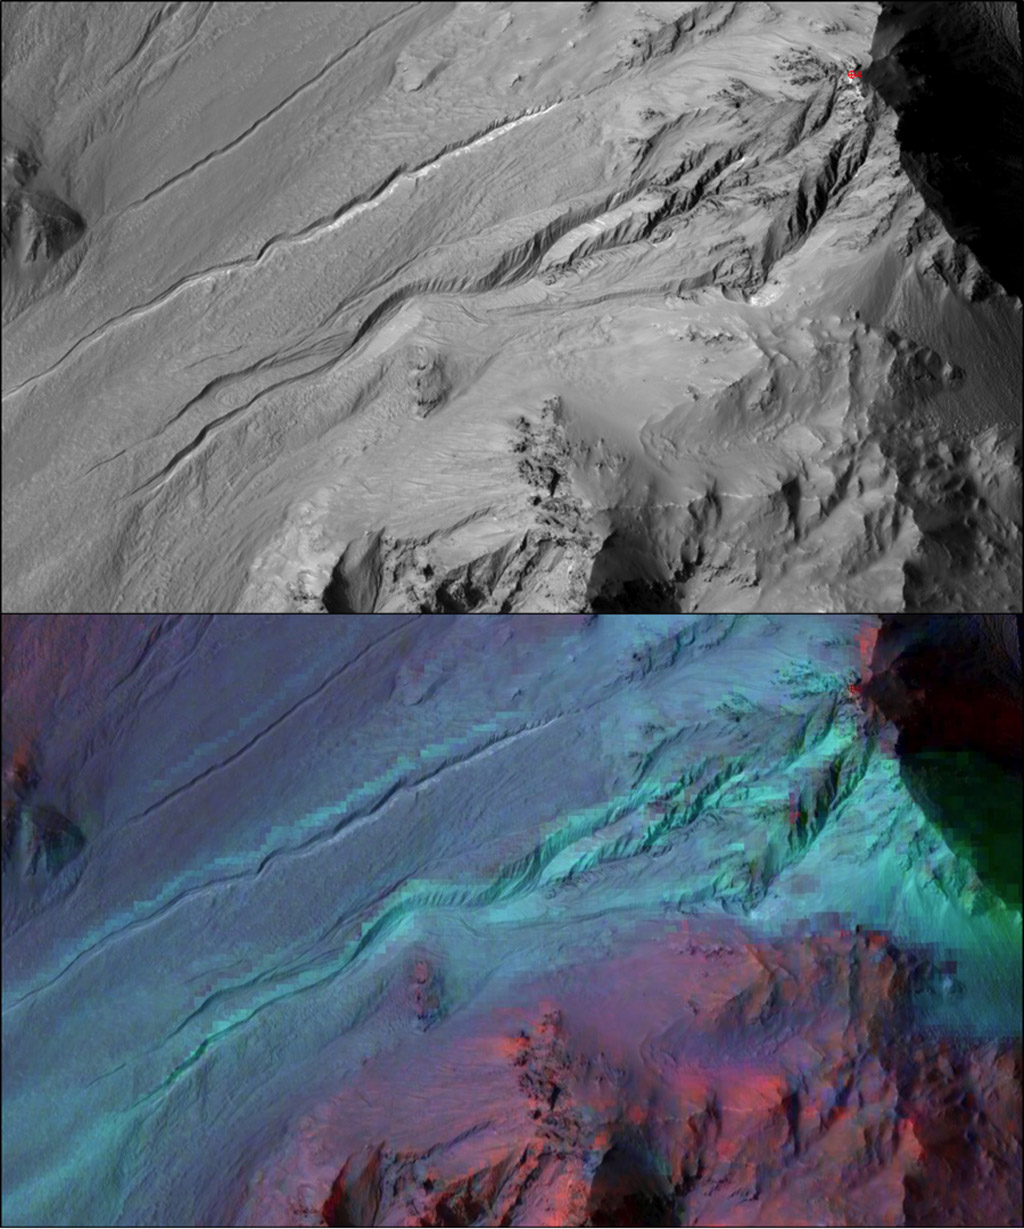 The highly incised Martian gullies seen in the top image resemble gullies on Earth that are carved by liquid water. However, when the gullies are observed with the addition of mineralogical information (bottom), no evidence for alteration by water appears.  The pictured area spans about 2miles (3kilometres) on the eastern rim of Hale Crater. The High Resolution Imaging Science Experiment (HiRISE) camera on NASA's Mars Reconnaissance Orbiter took the visible-light image. Colour-coded compositional information added in the lower version comes from the same orbiter's Compact Reconnaissance Imaging Spectrometer for Mars (CRISM). Image credit: NASA/JPL-Caltech/UA/JHUAPL.